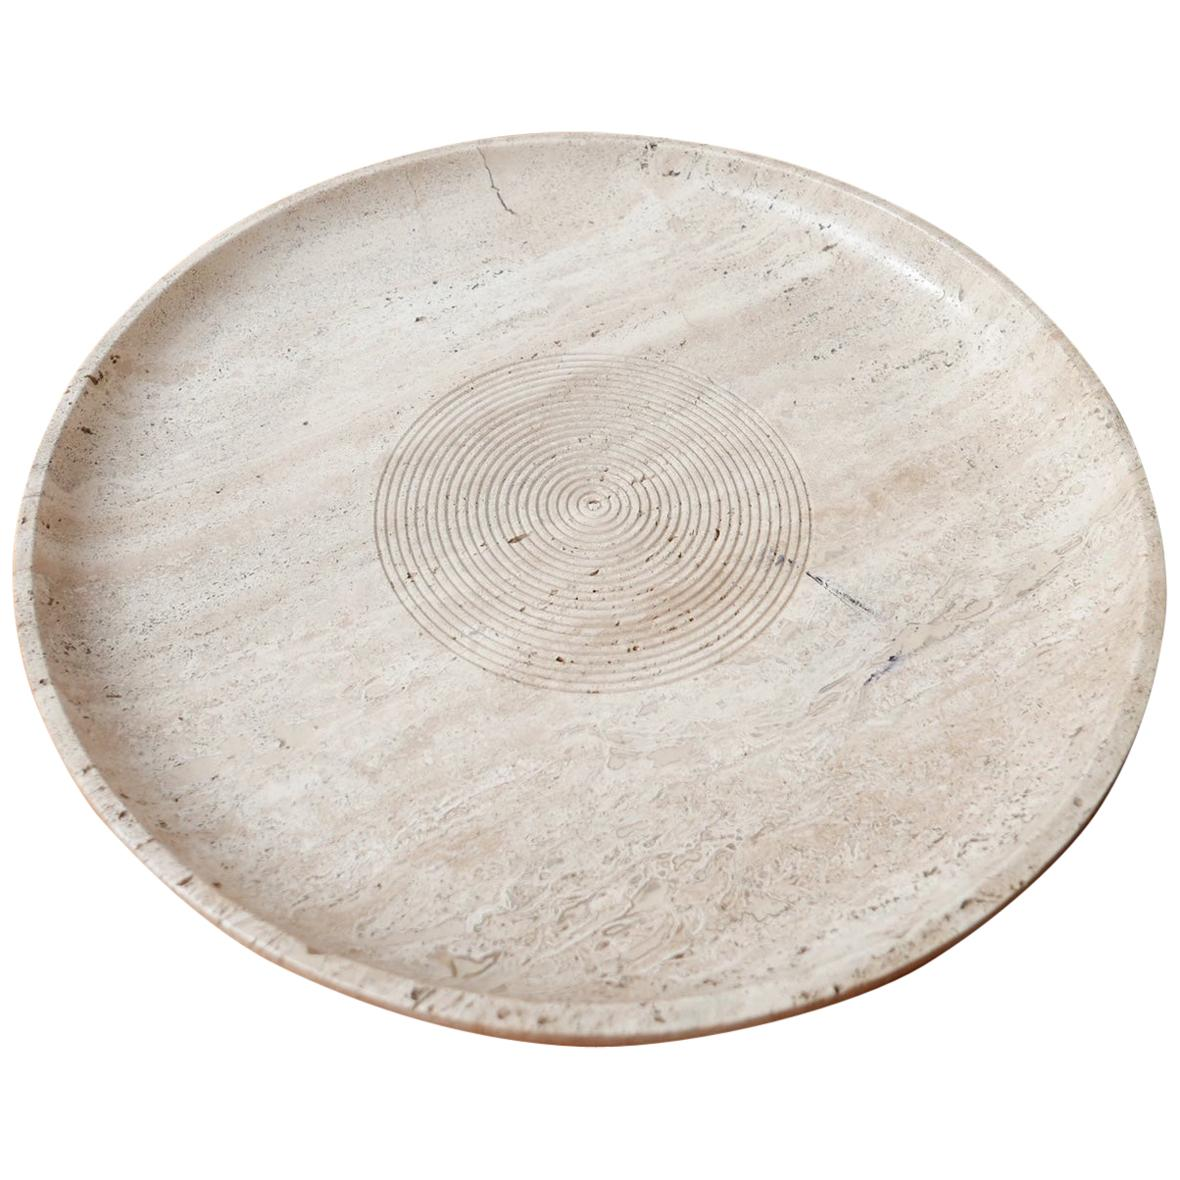 Travertine Midcentury Italian Bowl in Manner of Giusti and Di Rosa for Up & Up